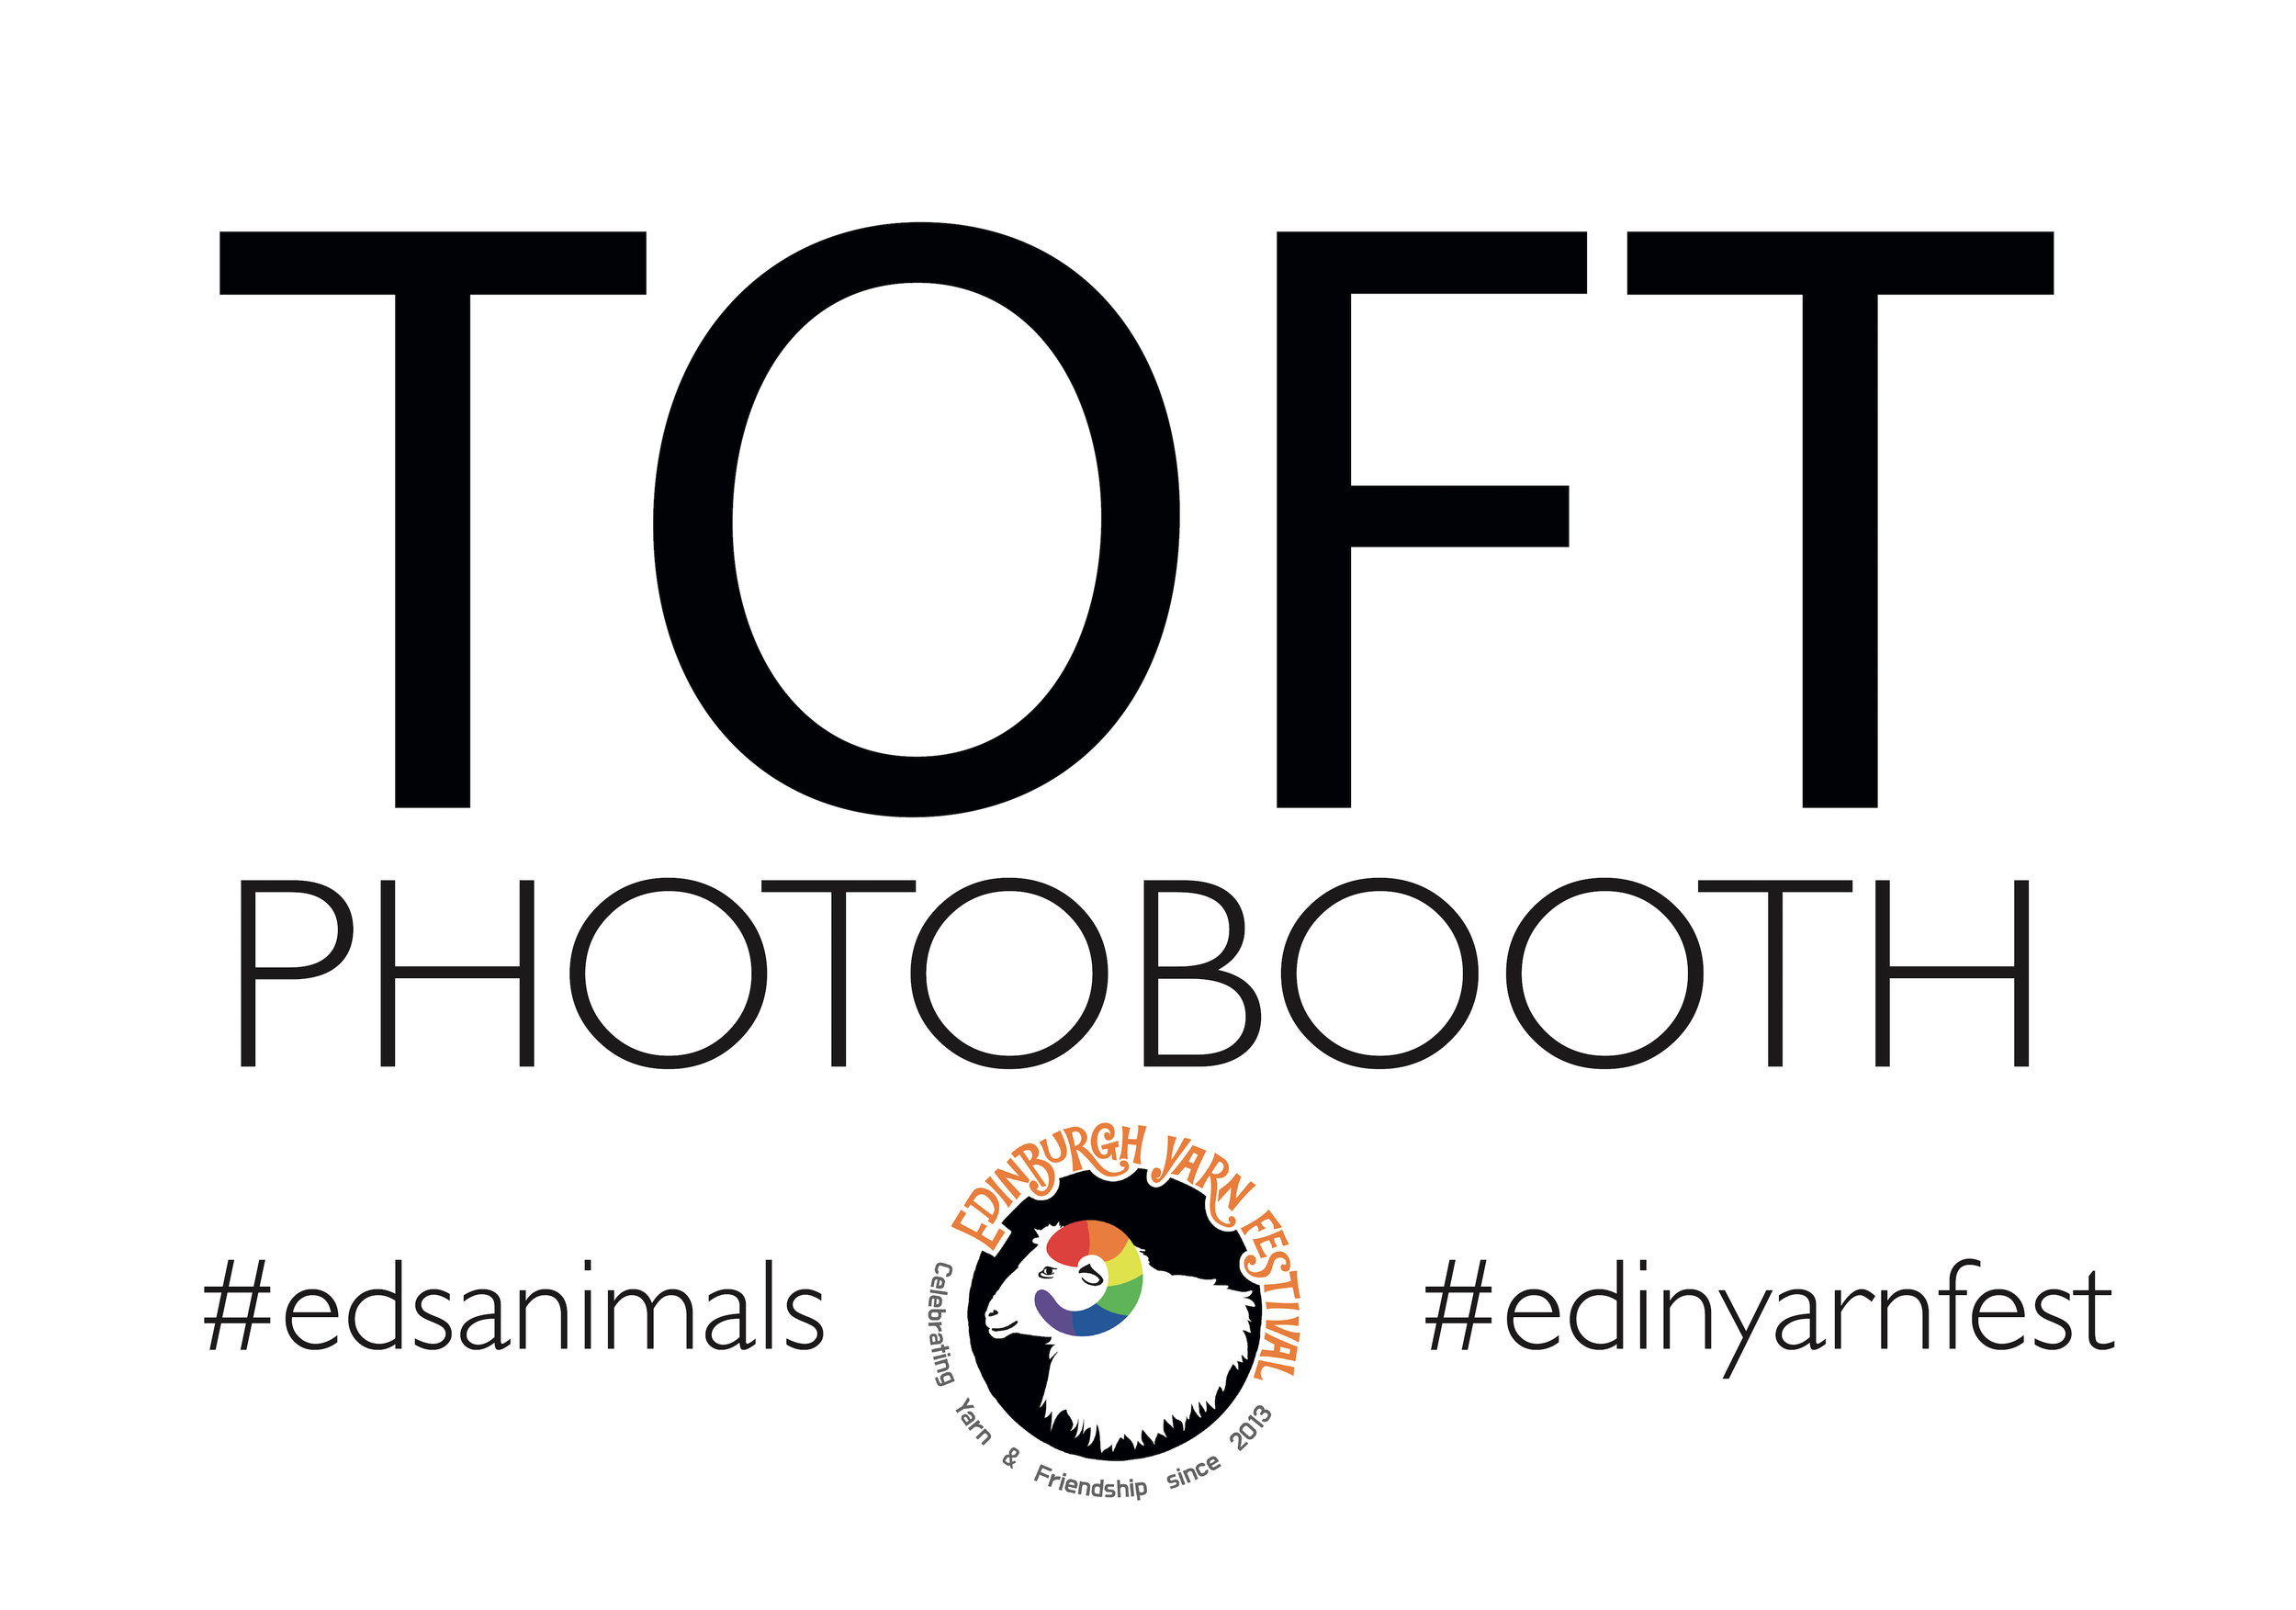 Photobooth Printout Logo-01 copy.jpg